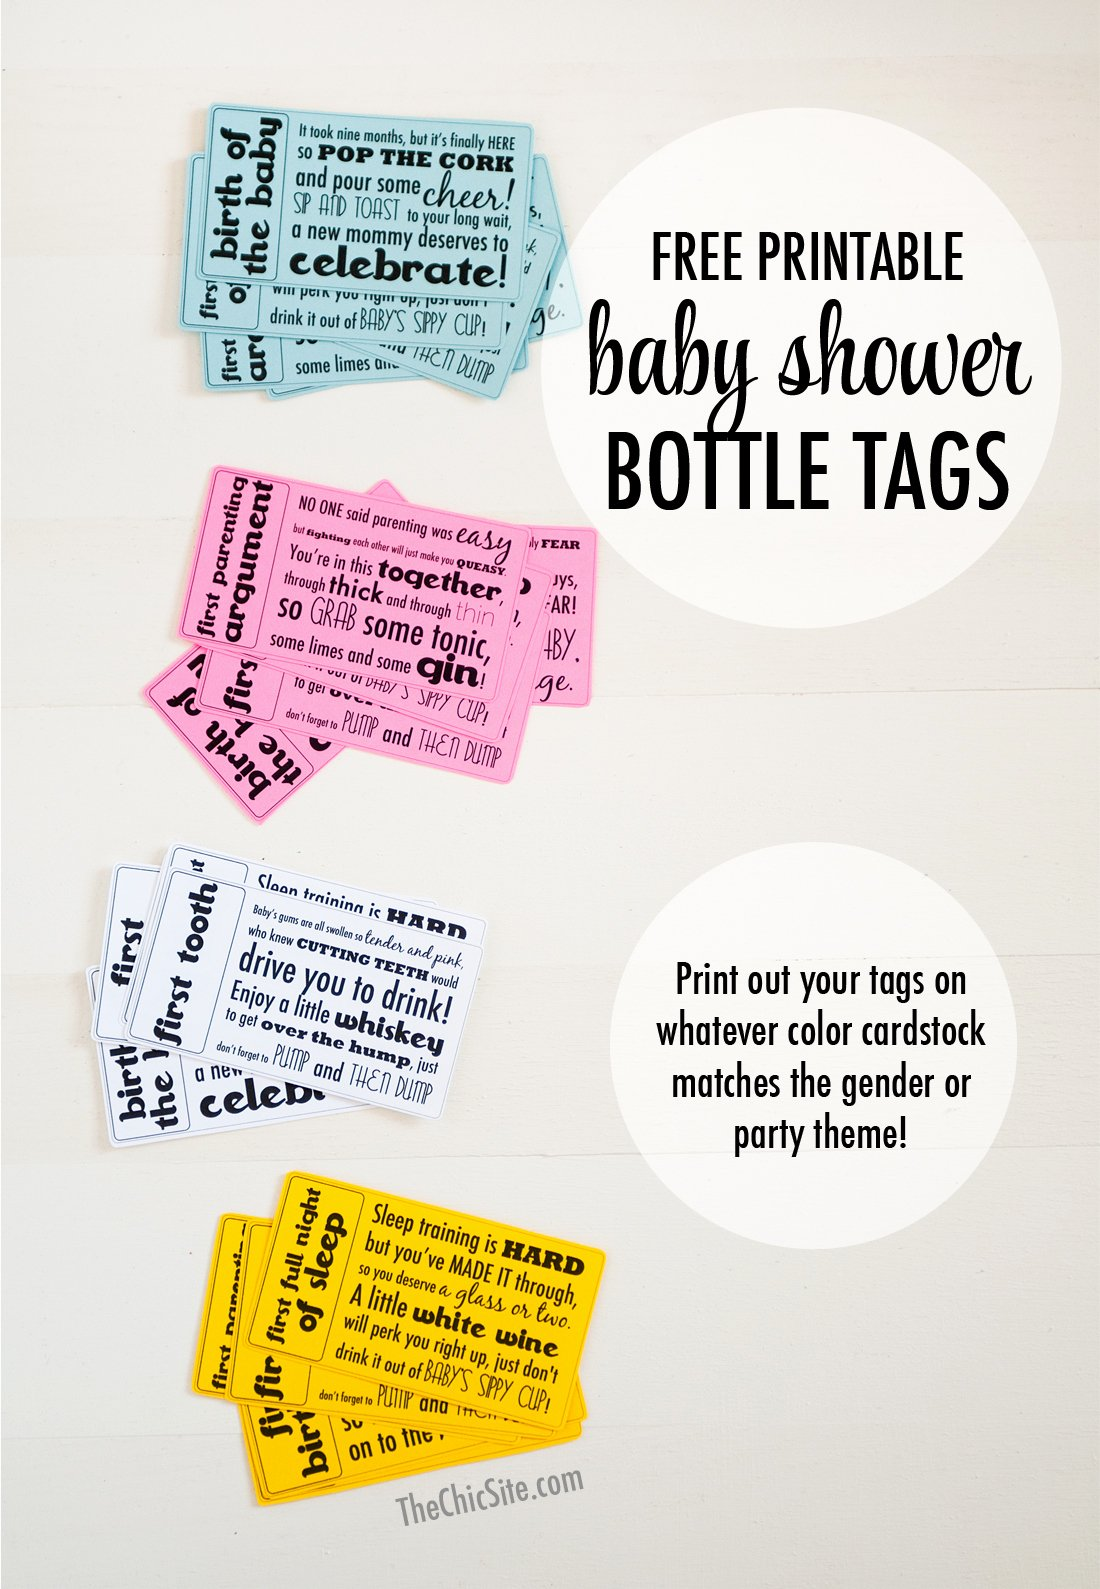 Baby Shower Tags Printable Awesome Baby Shower Gift Tags the Chic Site